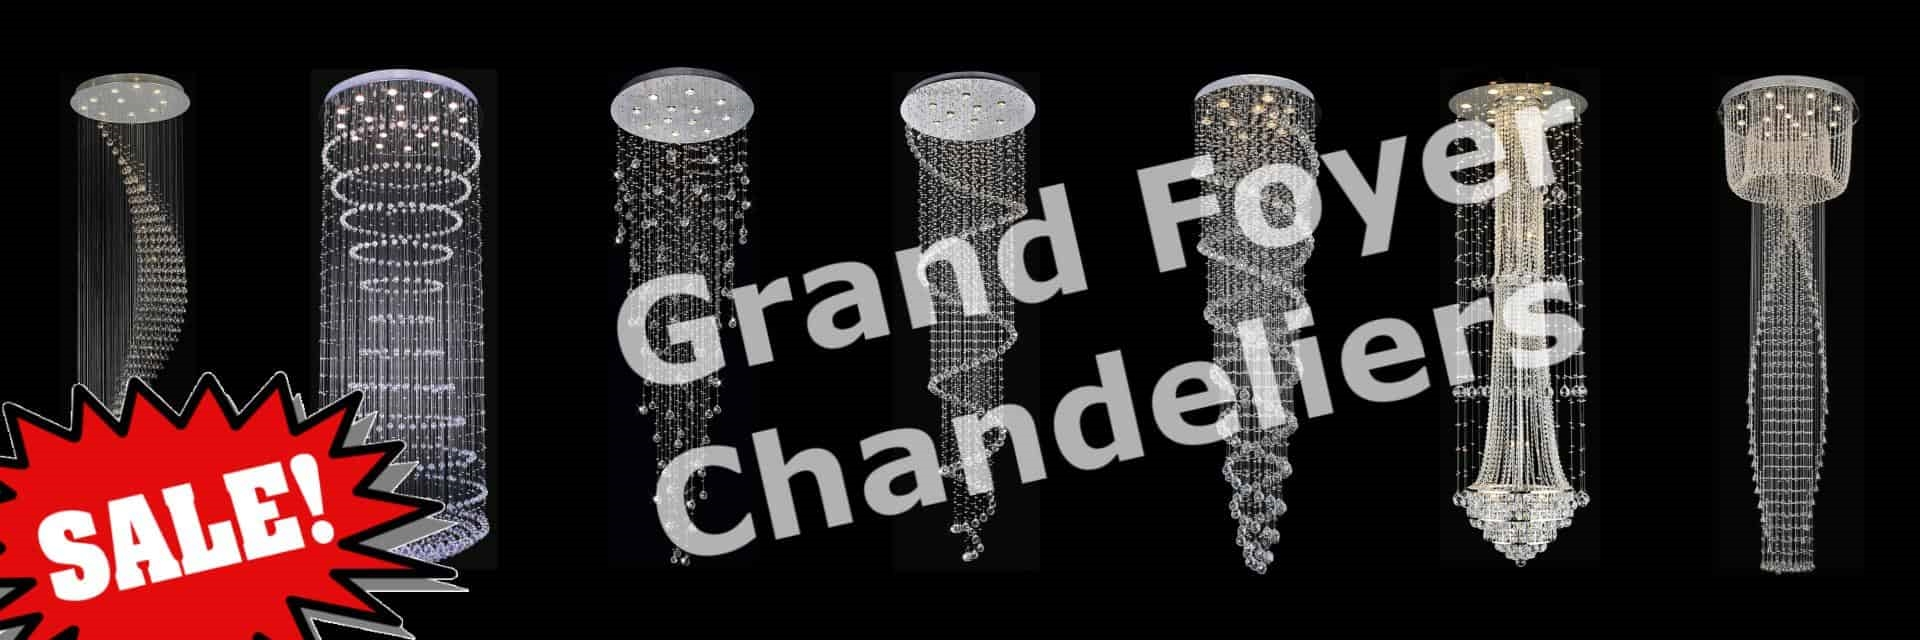 Lighting stores staircase chandeliers aloadofball Choice Image